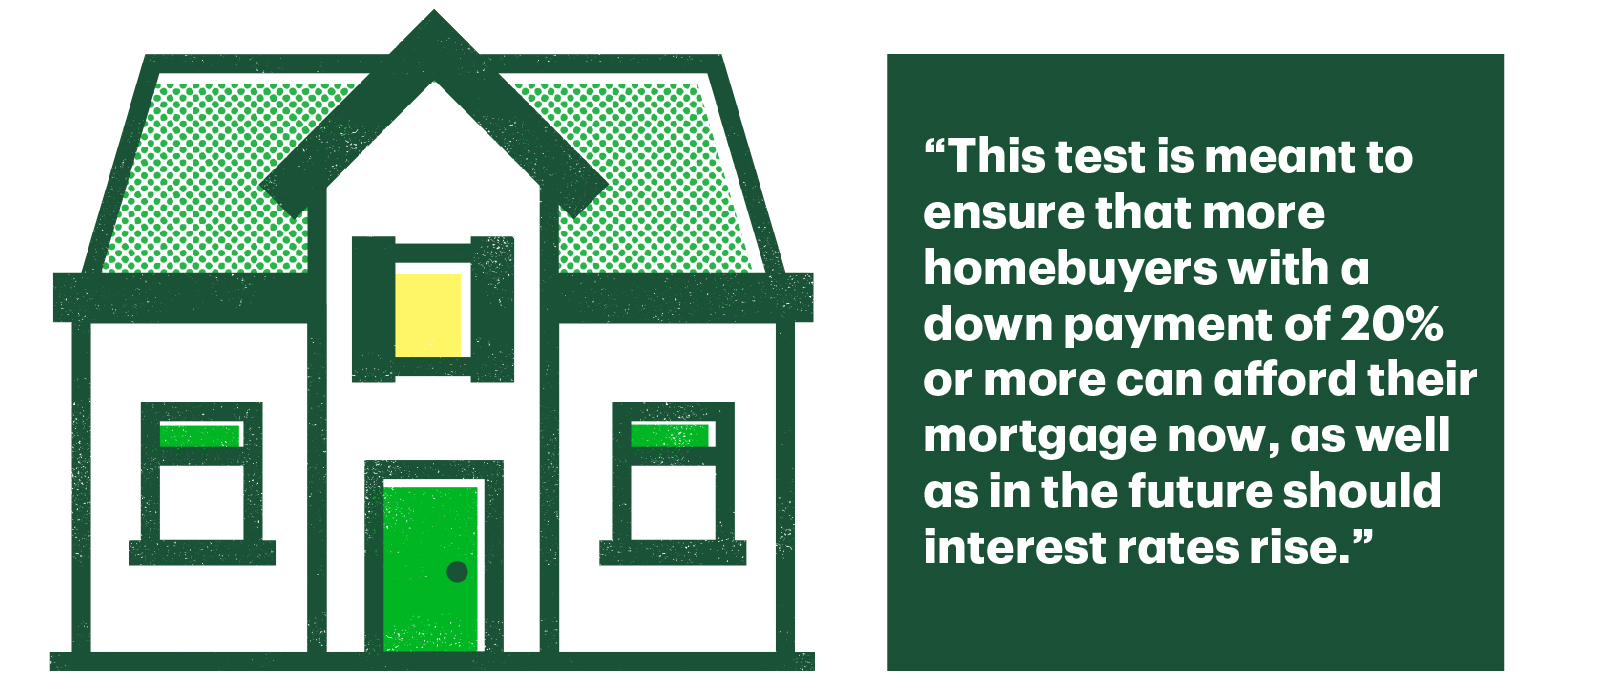 Graphic of house with text that says 'This test is meant to ensure that home-buyers with a down payment of 20% or more can afford their mortgage now, as well as in the future should interest rates rise.'